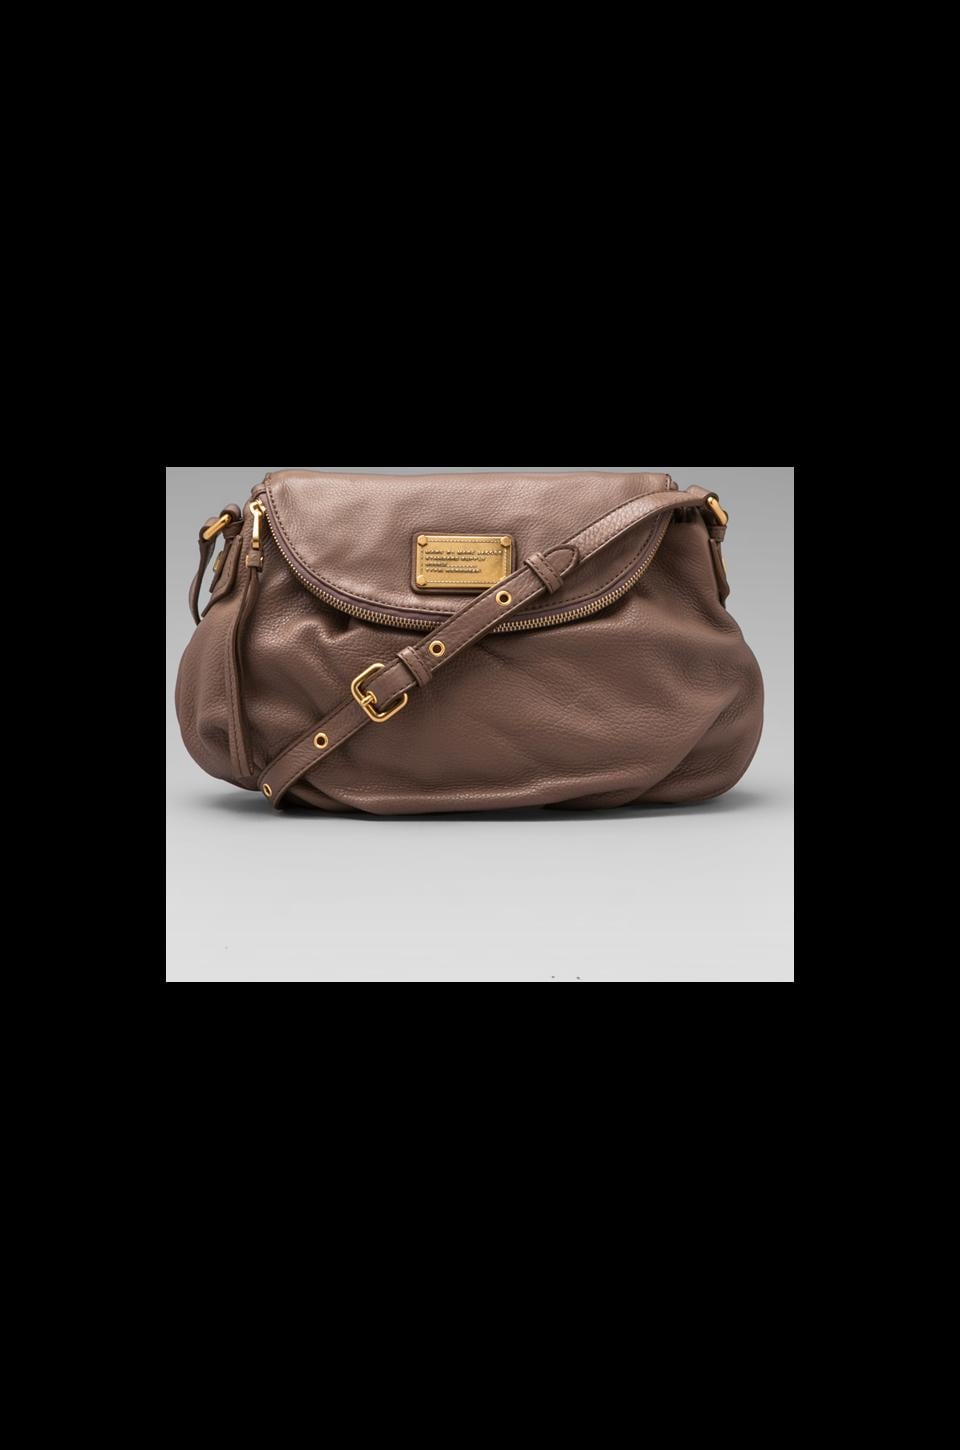 Marc by Marc Jacobs Classic Q Natasha Crossbody in Rootbeer